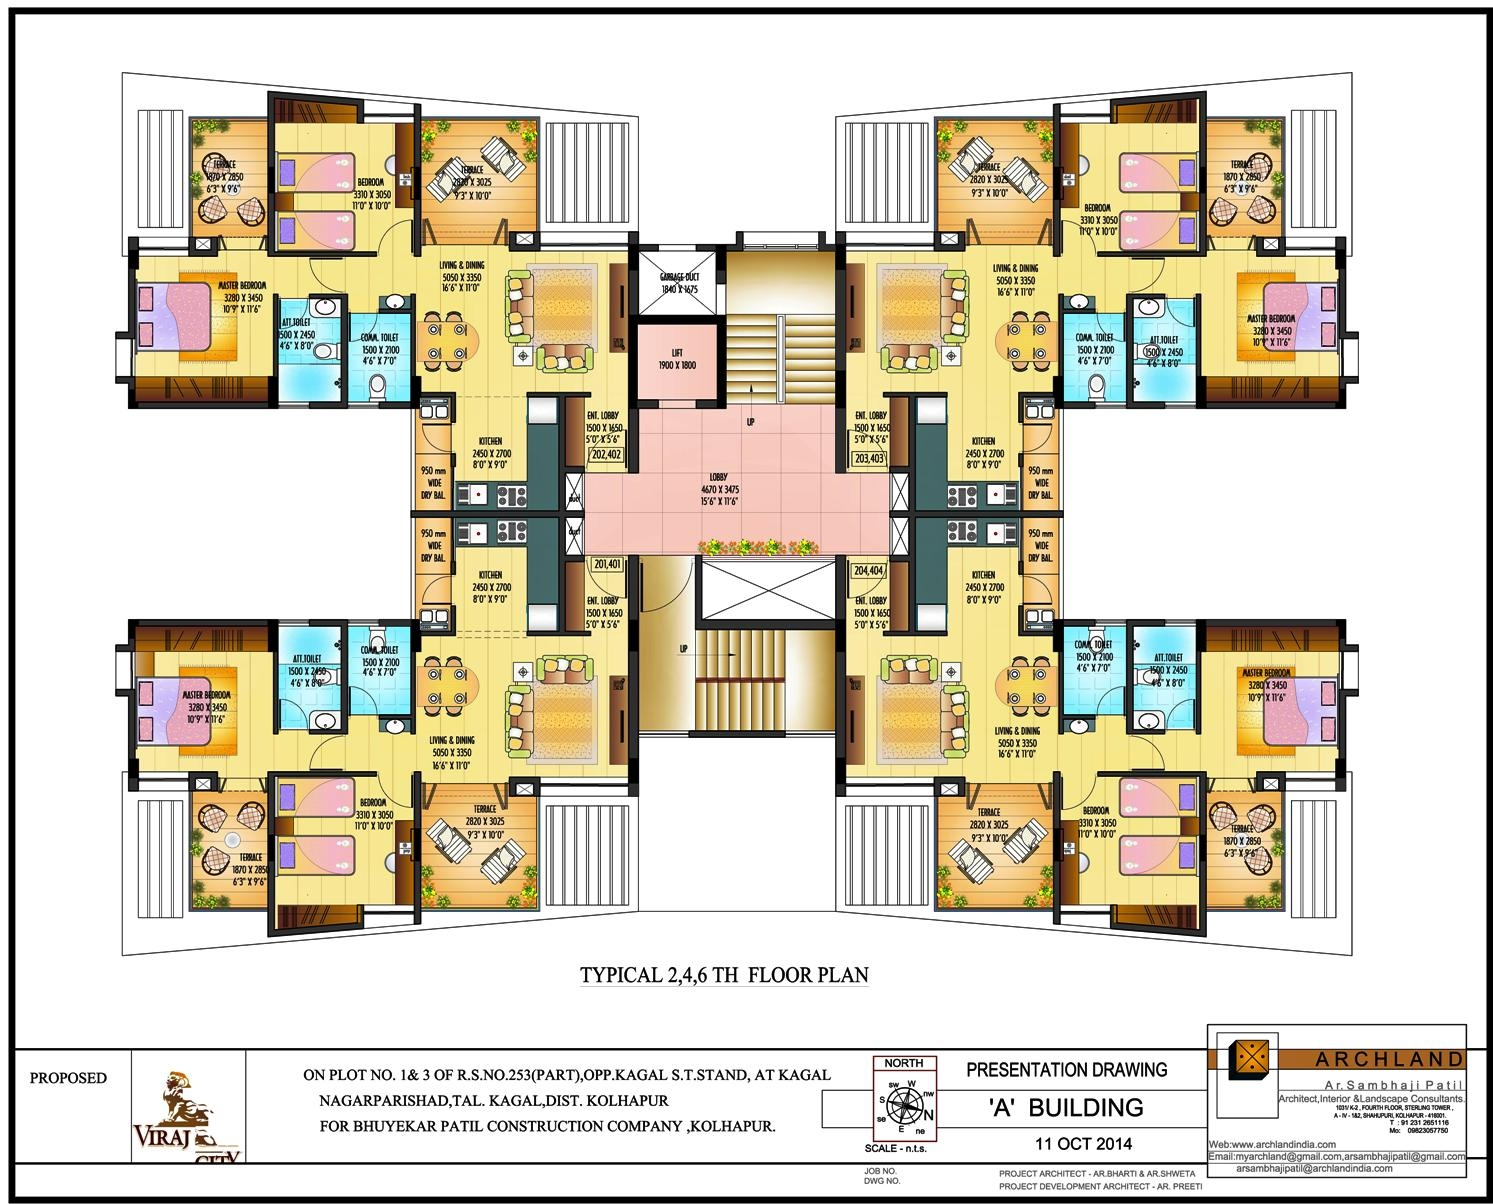 Typical 2nd, 4th, 6th Floor Plan A Bldg.